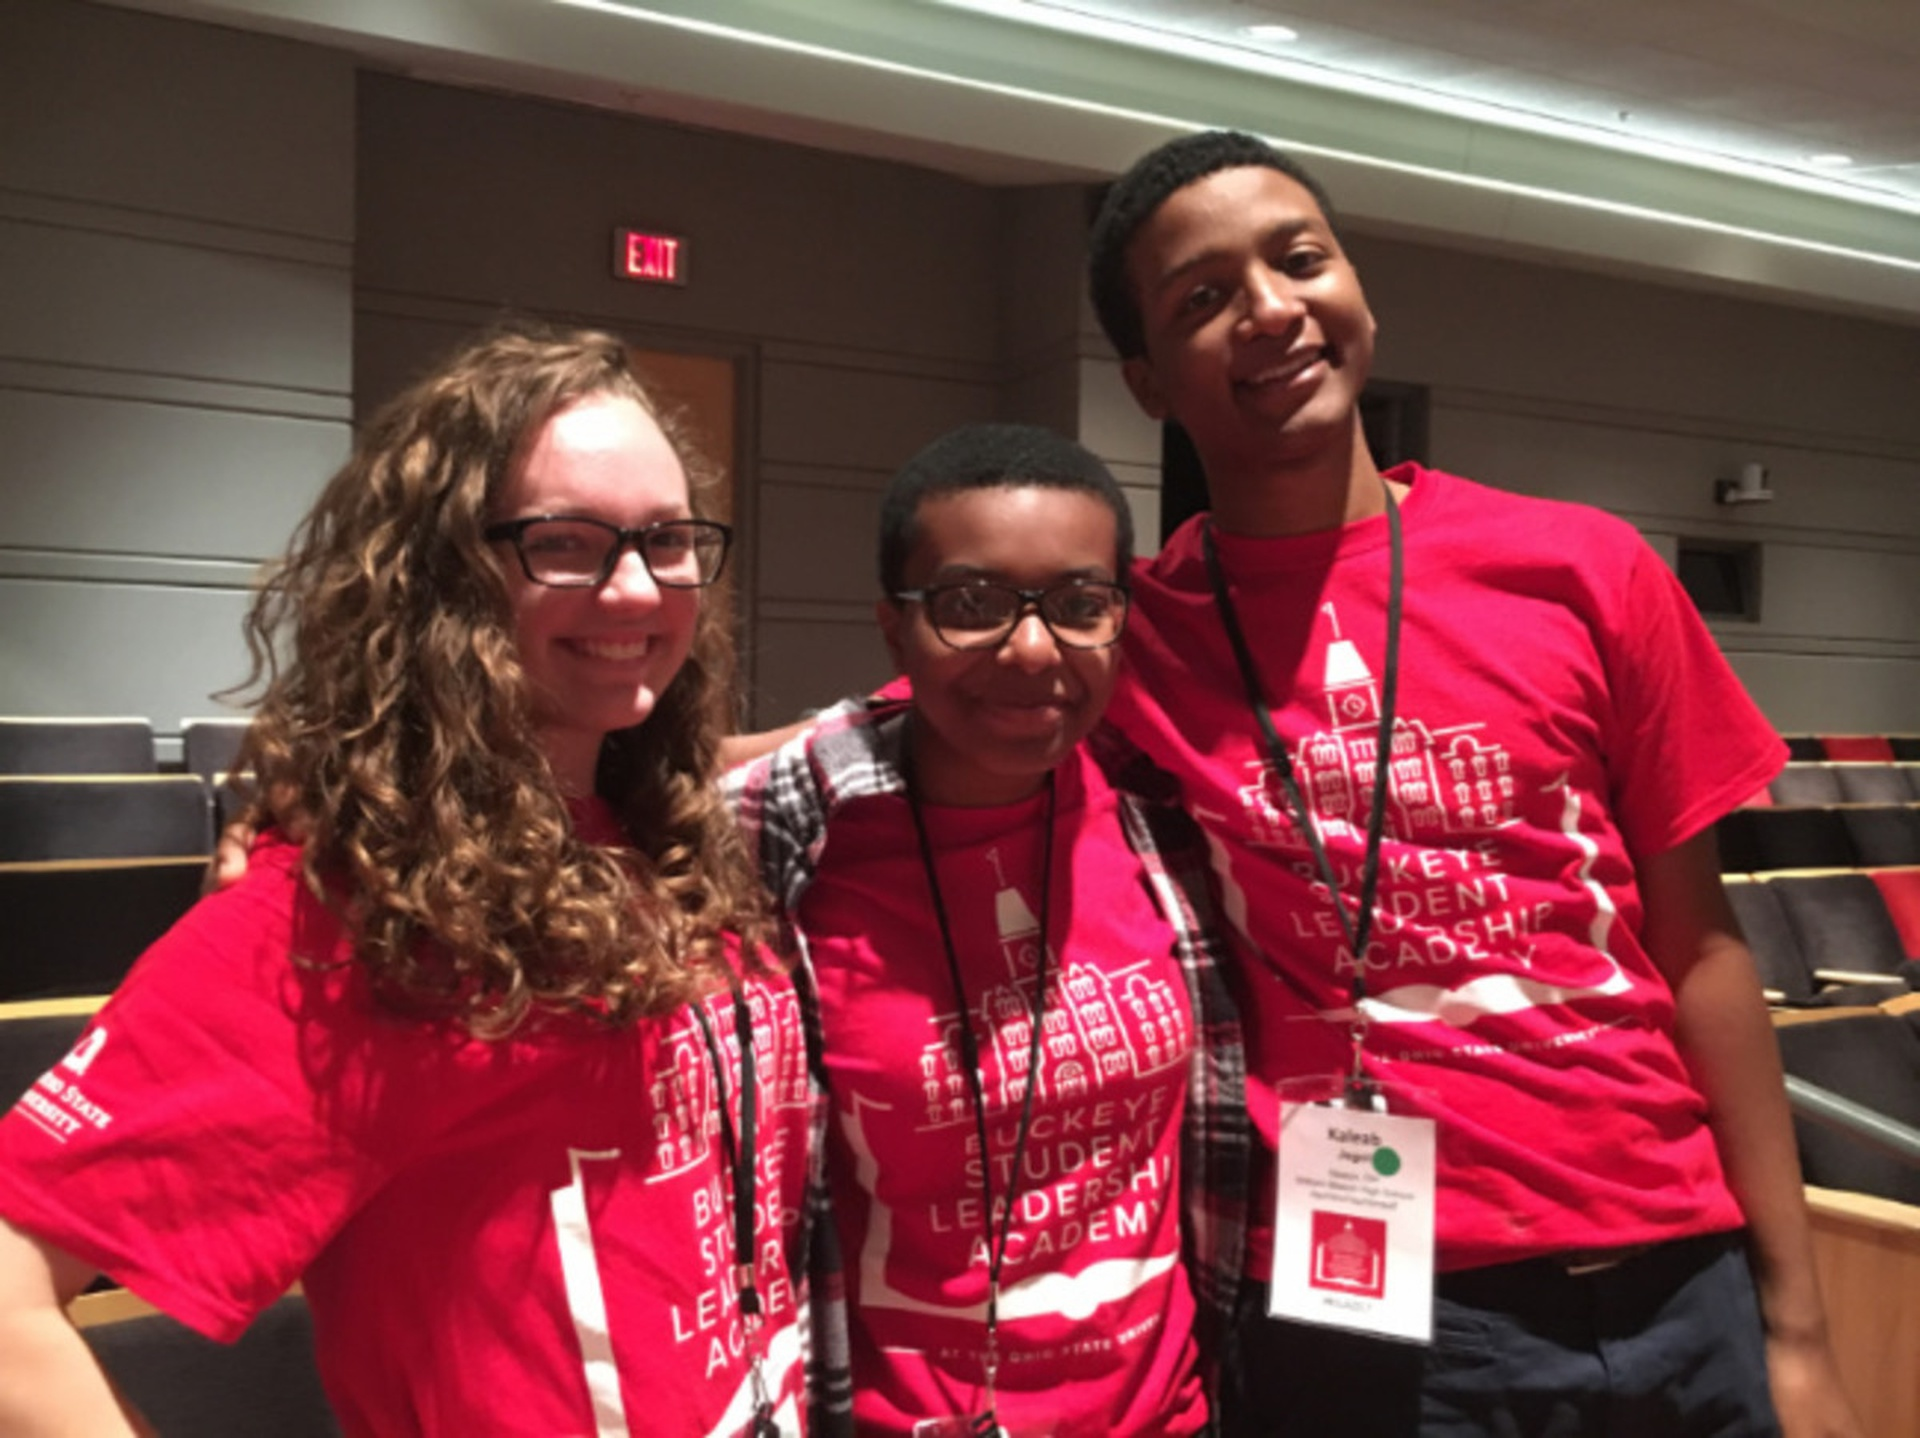 Madison Gillotte, Ose Arheghan and Kaleab Jegol attended the Buckeye Student Leadership Academy